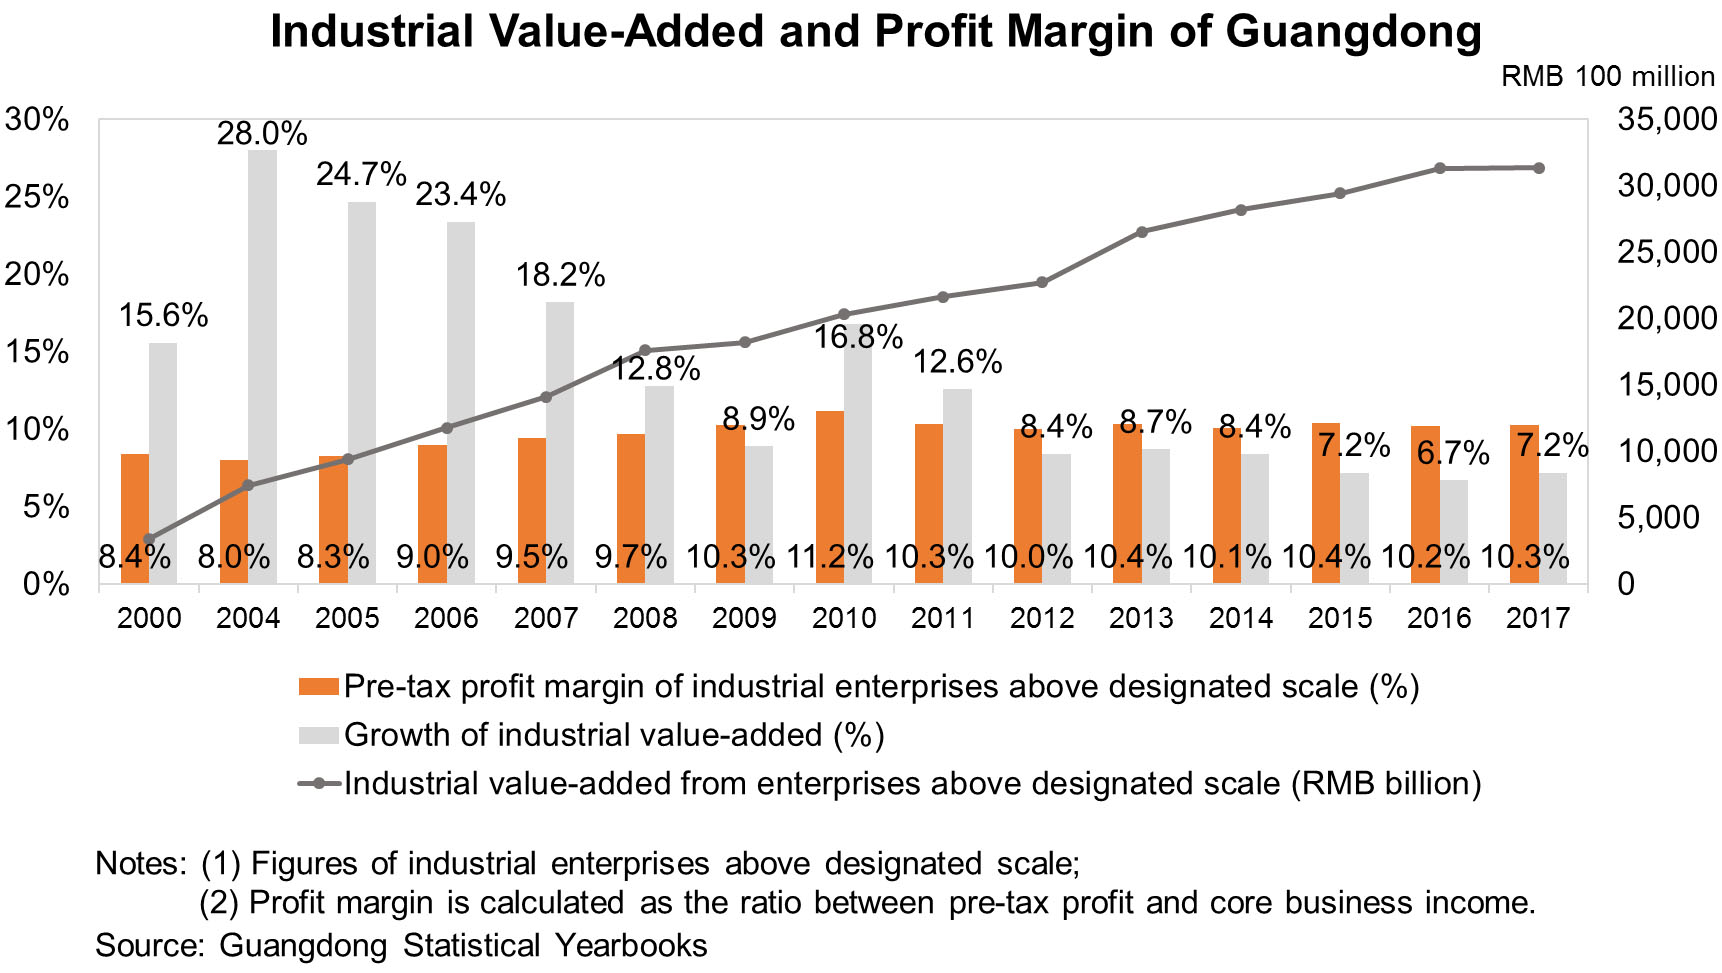 Chart: Industrial Value-Added and Profit Margin of Guangdong